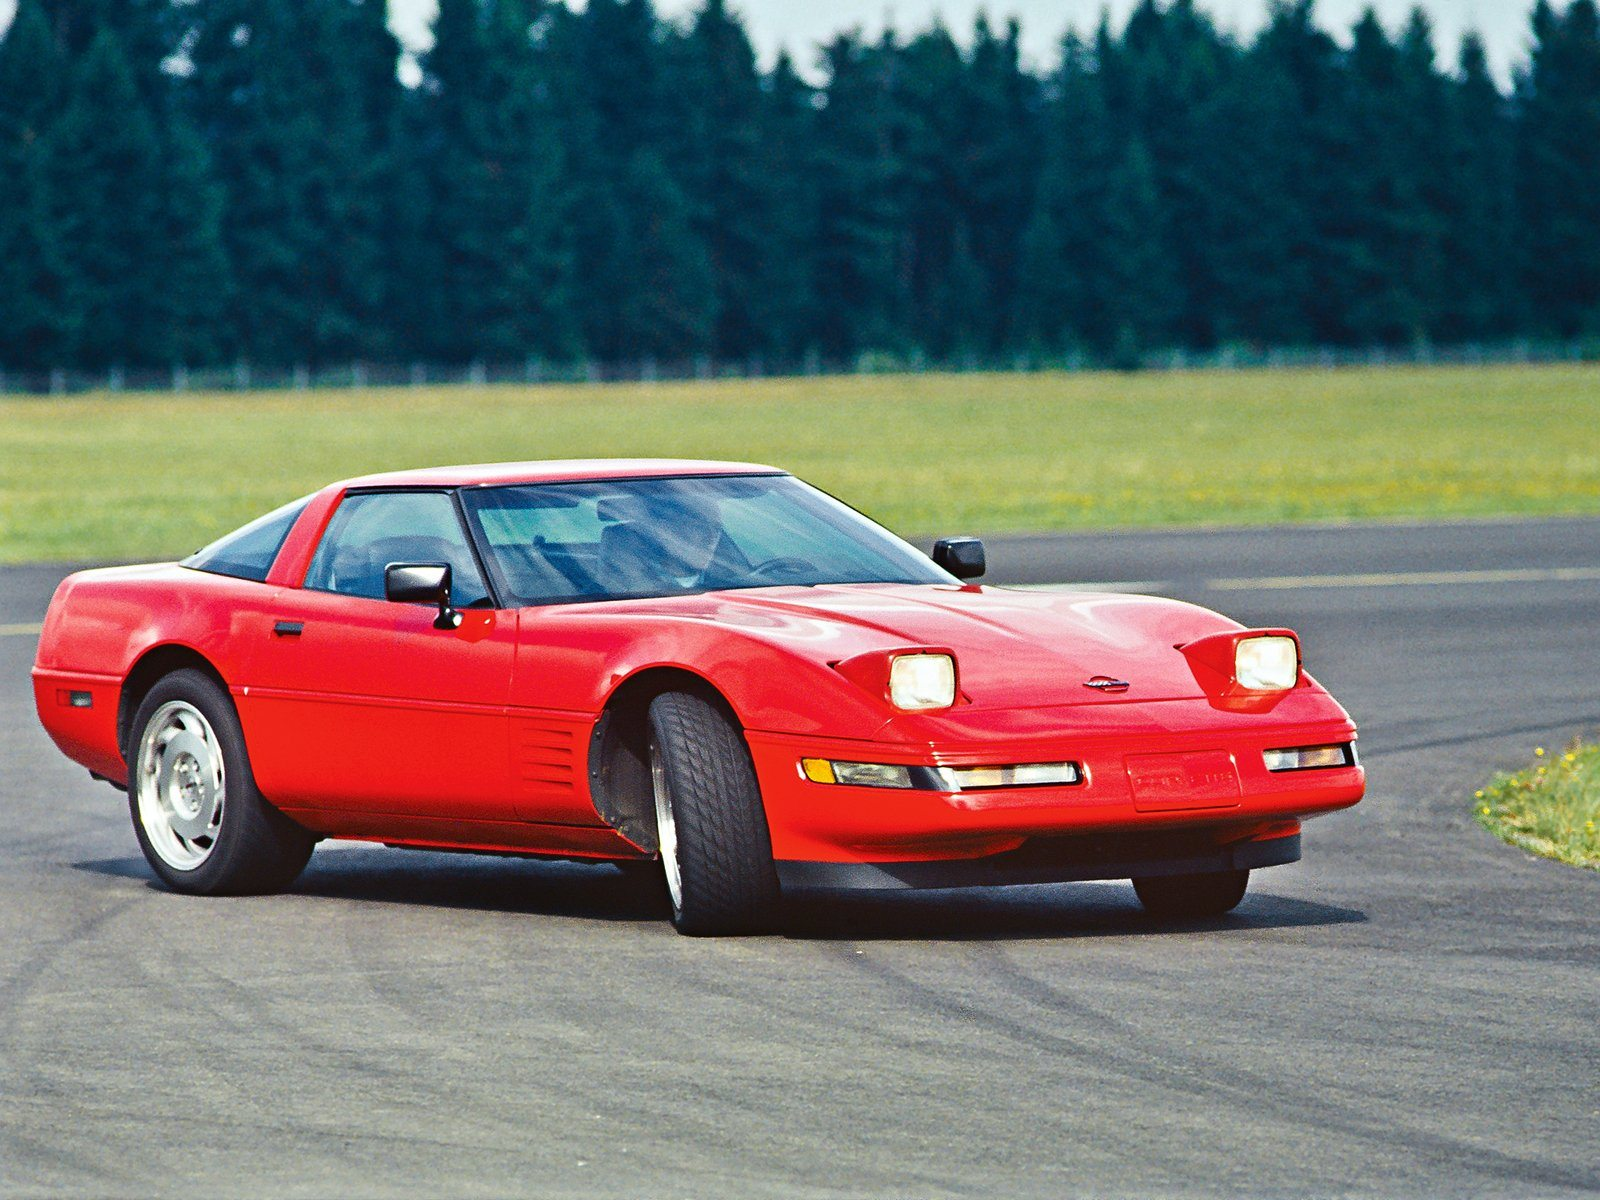 1991 c4 corvette image gallery pictures. Black Bedroom Furniture Sets. Home Design Ideas